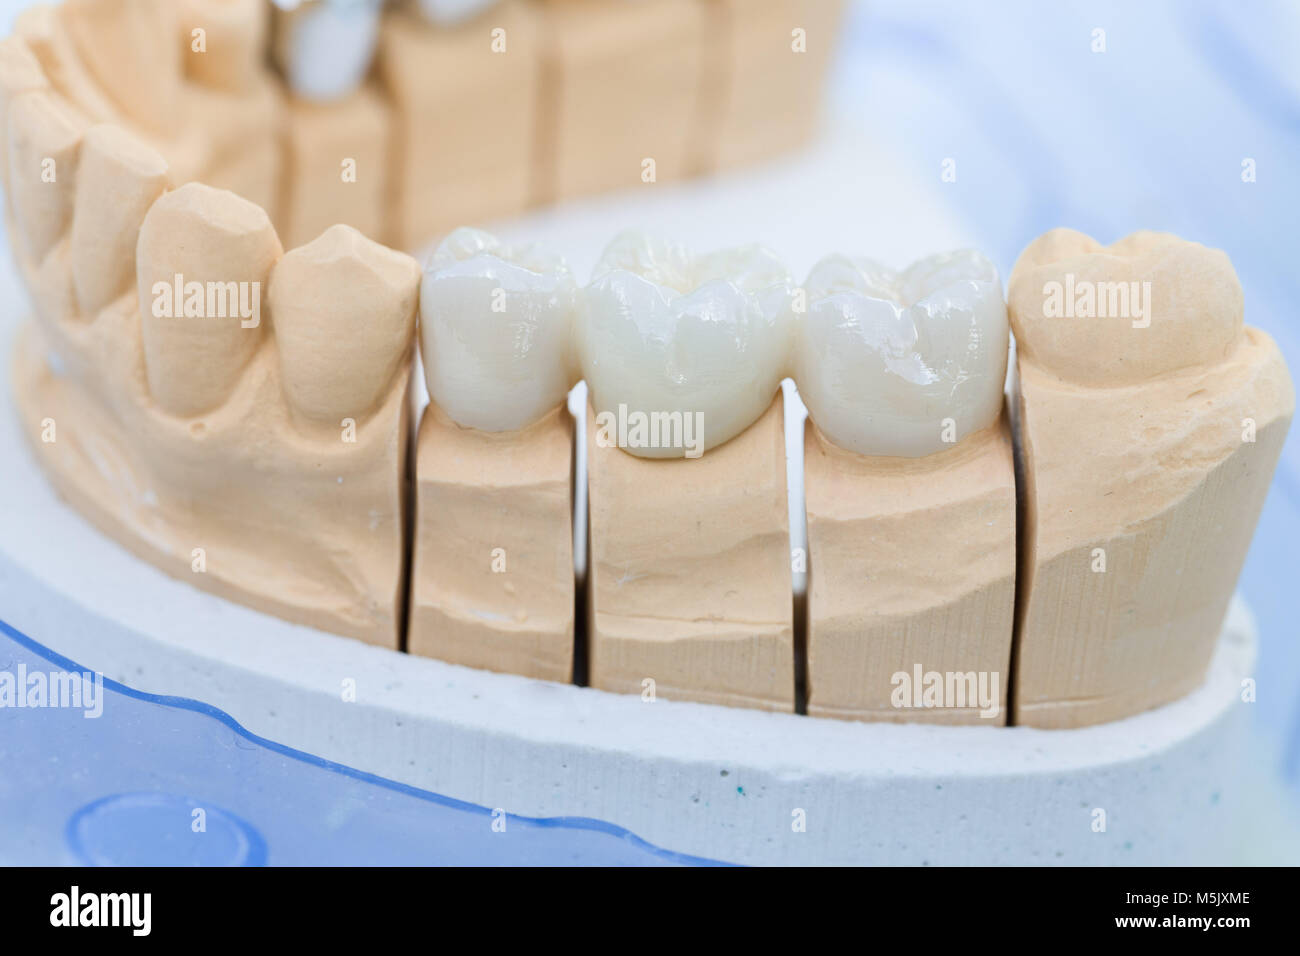 A prosthesis saddle with artificial dentition in a dental laboratory - Stock Image